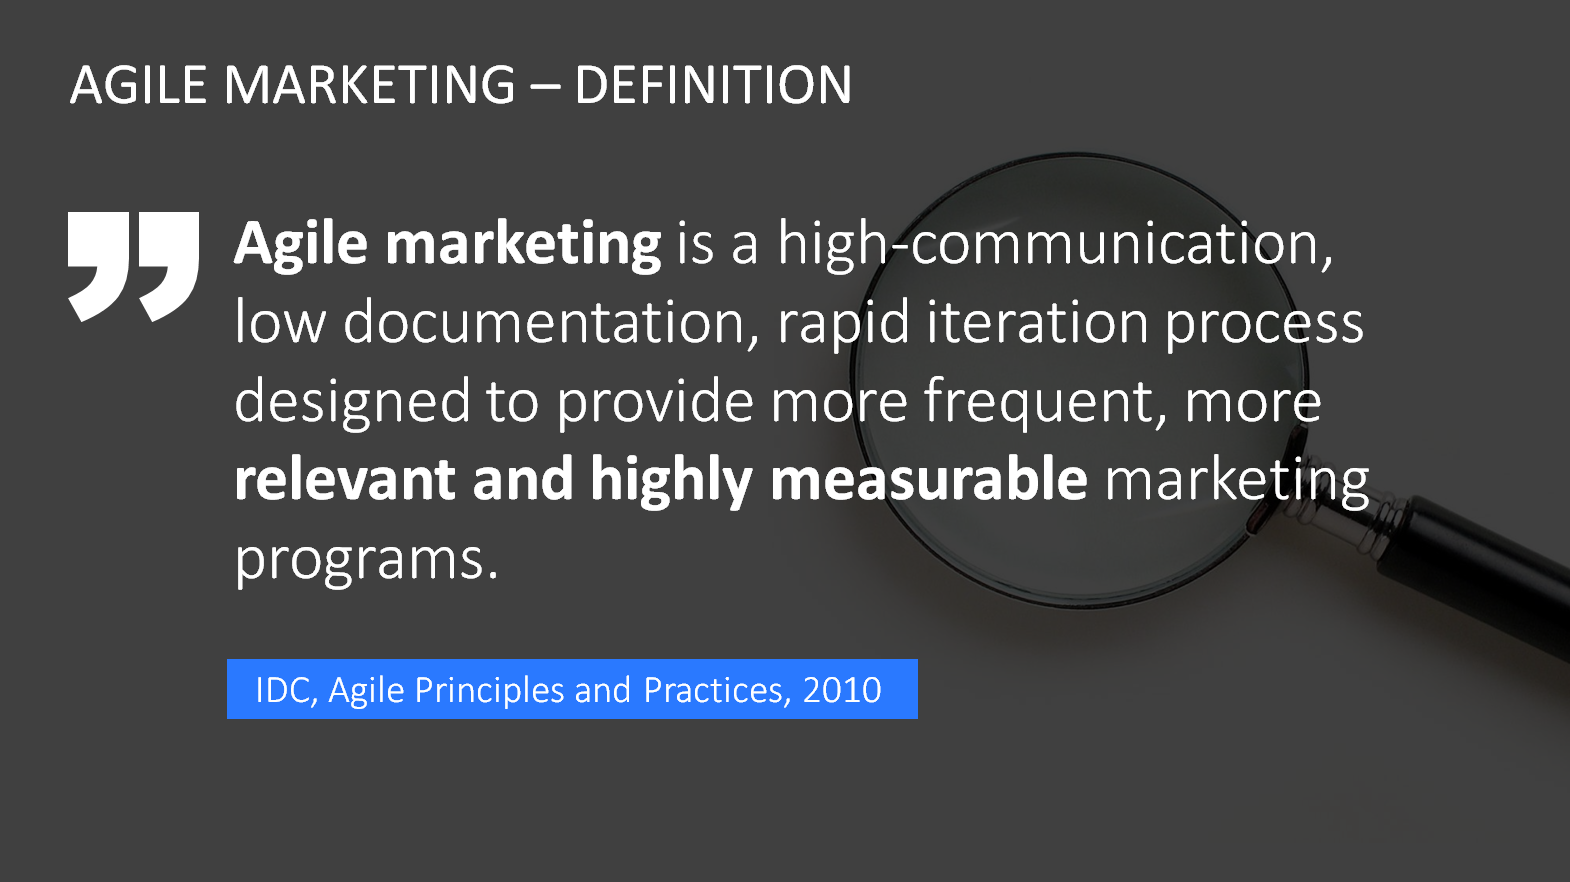 agile-marketing-definition